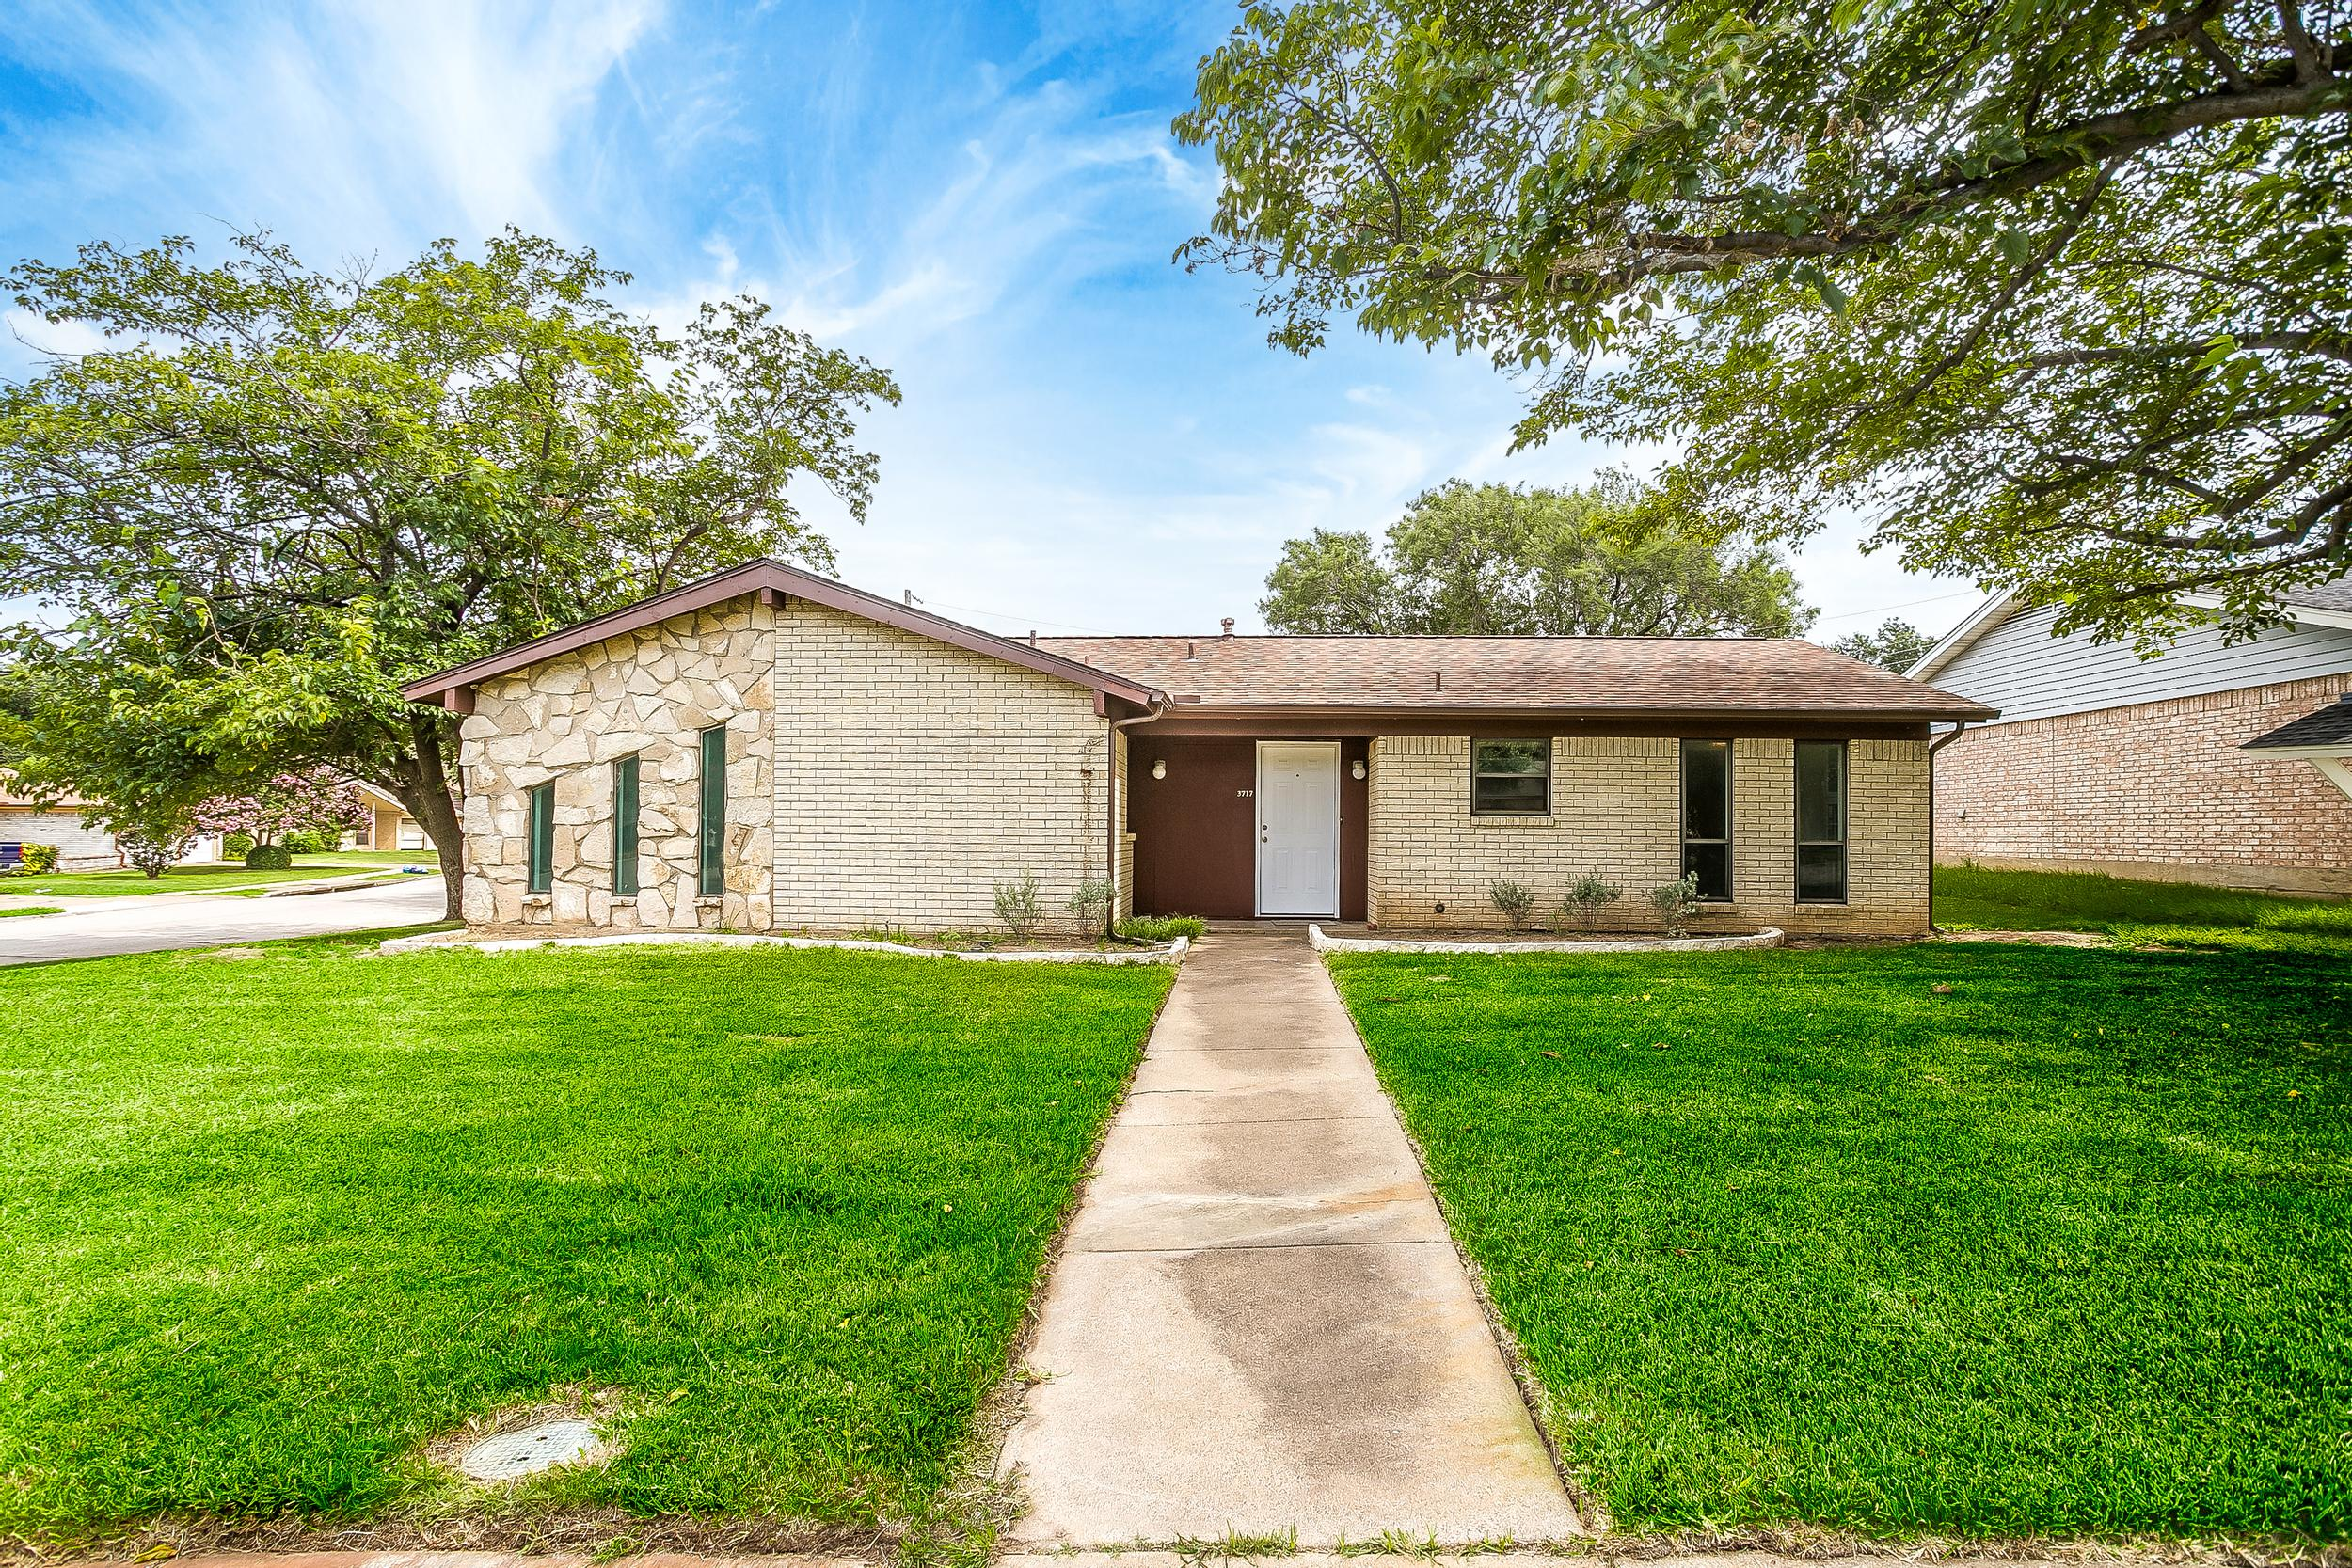 Richardson, Texas, property manager for rental property